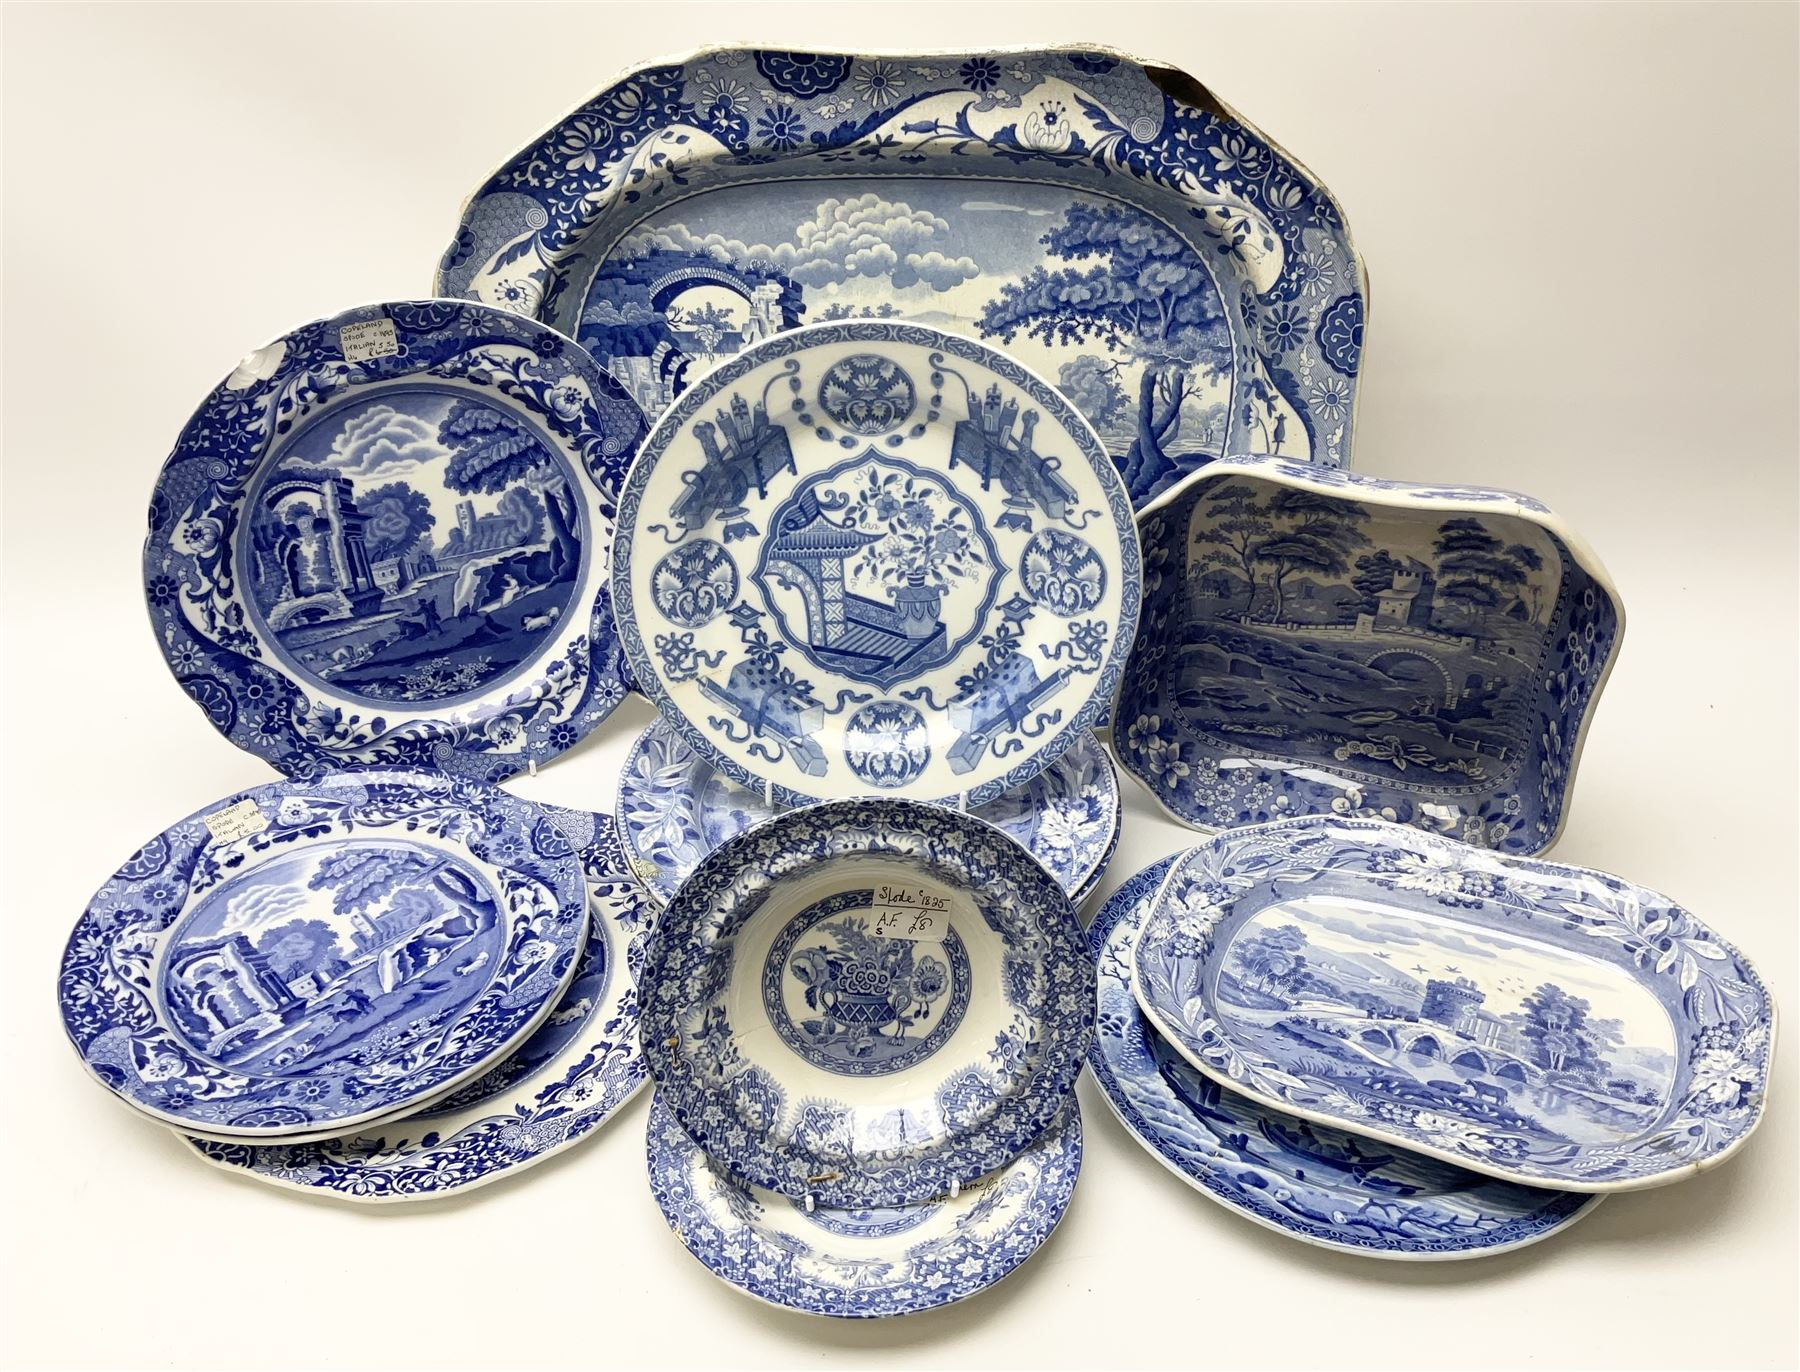 A group of 19th century Spode blue and white transfer printed pottery